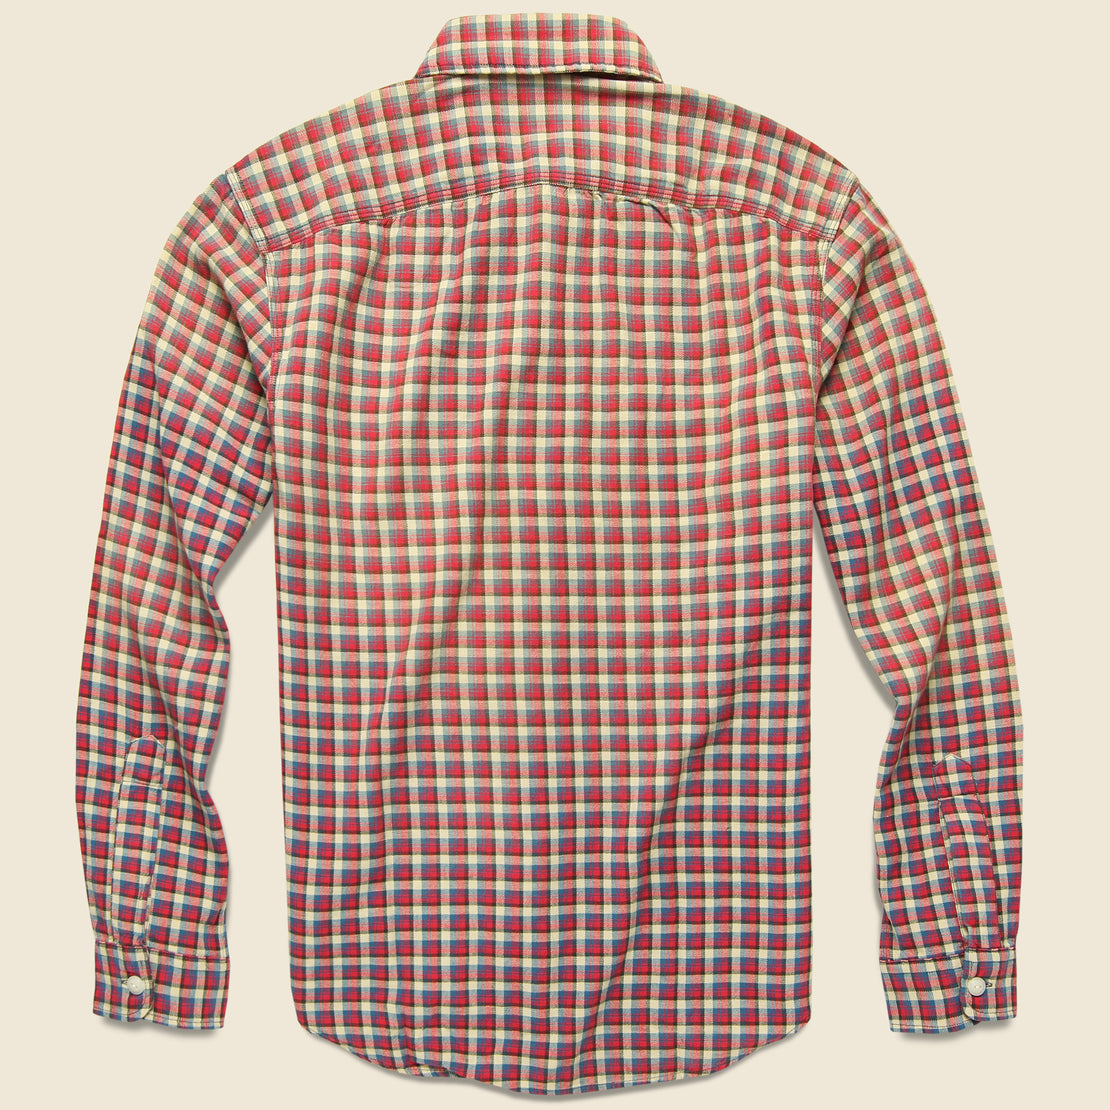 Lee Workshirt - Red/Blue Plaid